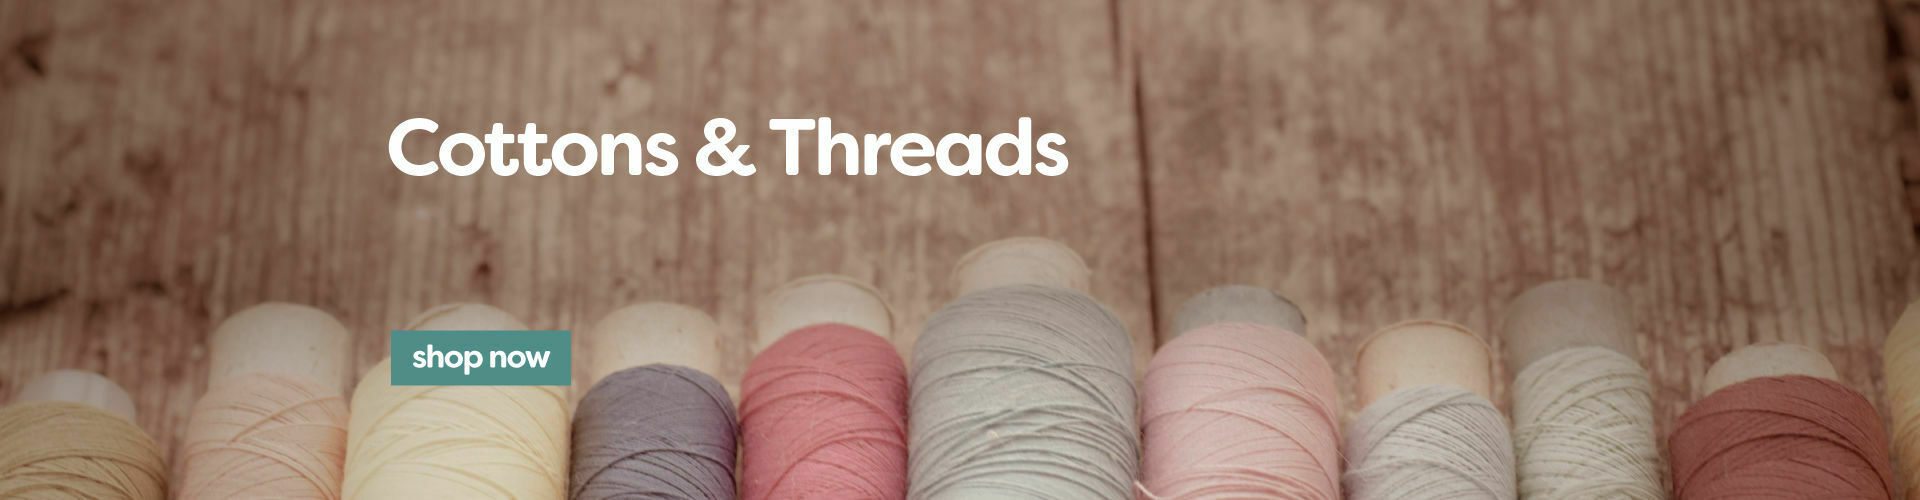 Cottons & Threads